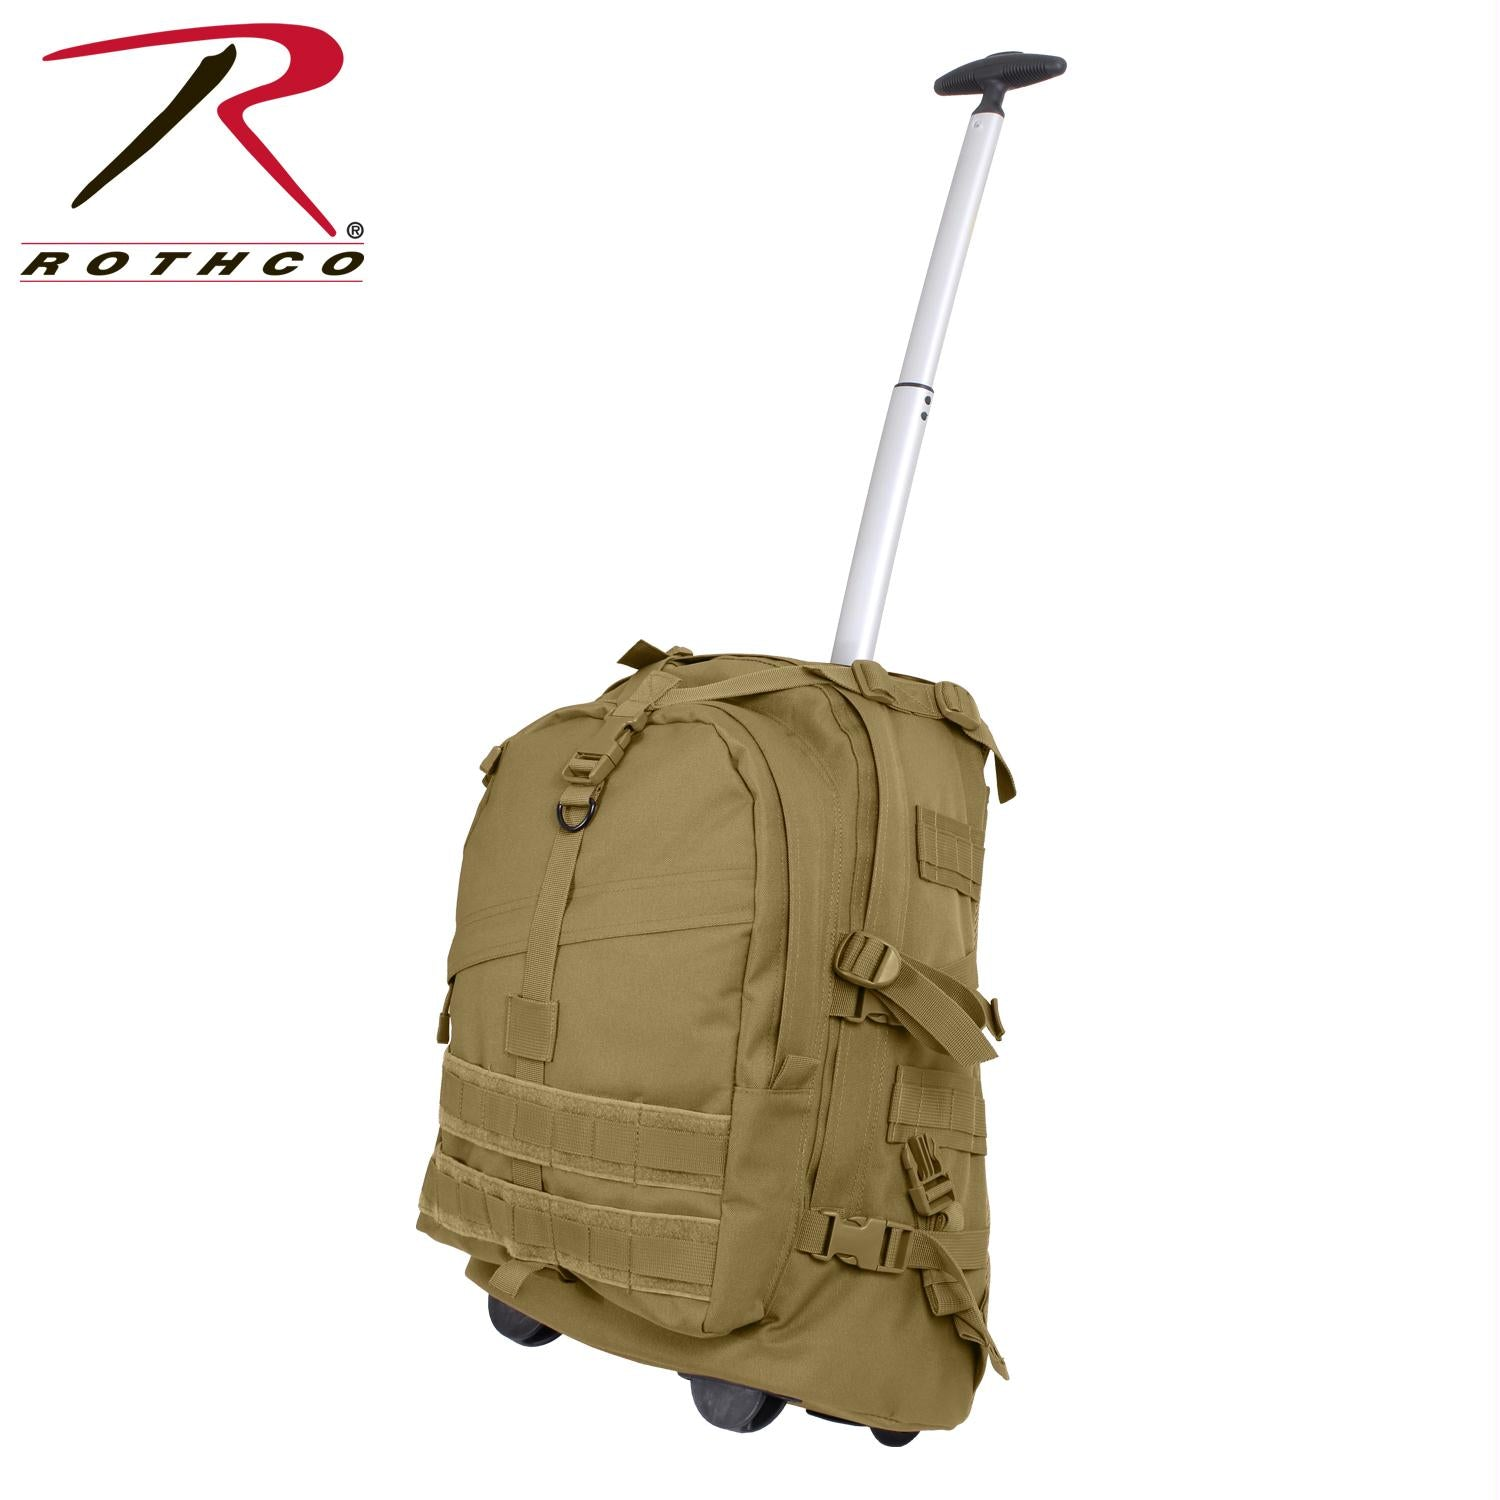 Rothco Rolling Large Transport Pack - Coyote Brown